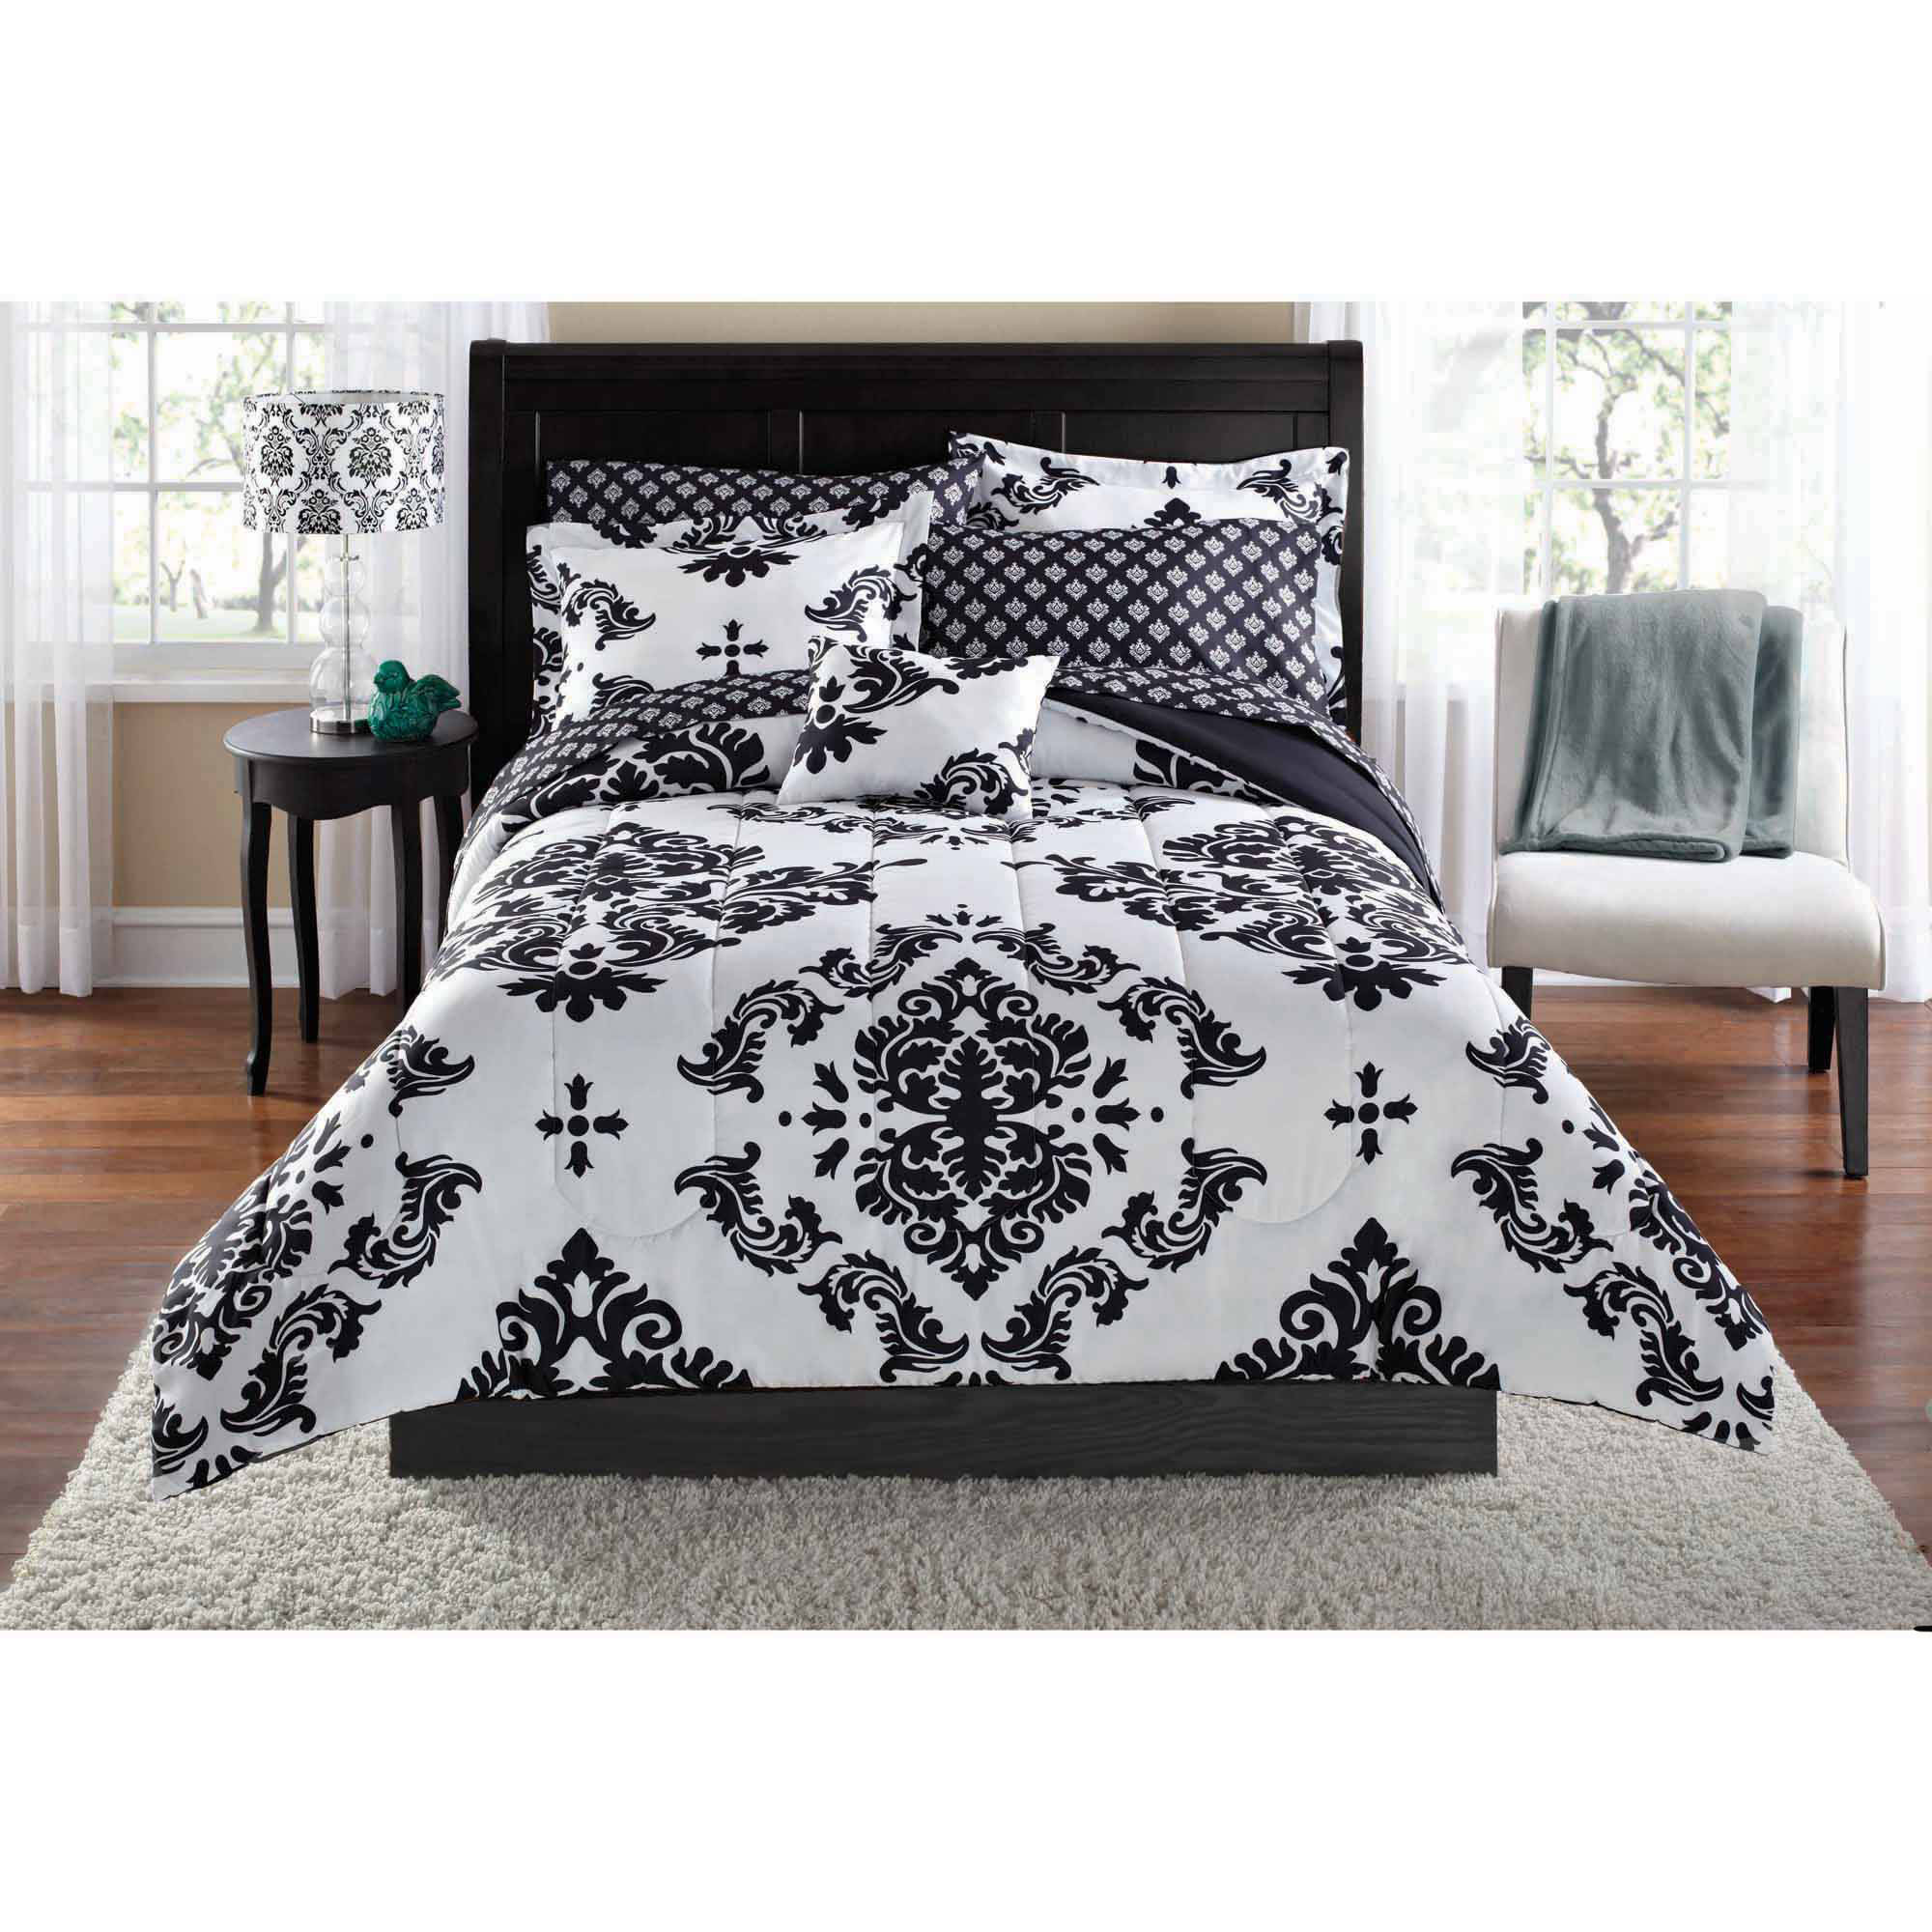 Great Get best price Best Selling Mainstays Classic Noir Bed In A Bag Bedding Set You can buy reviews price check price on web